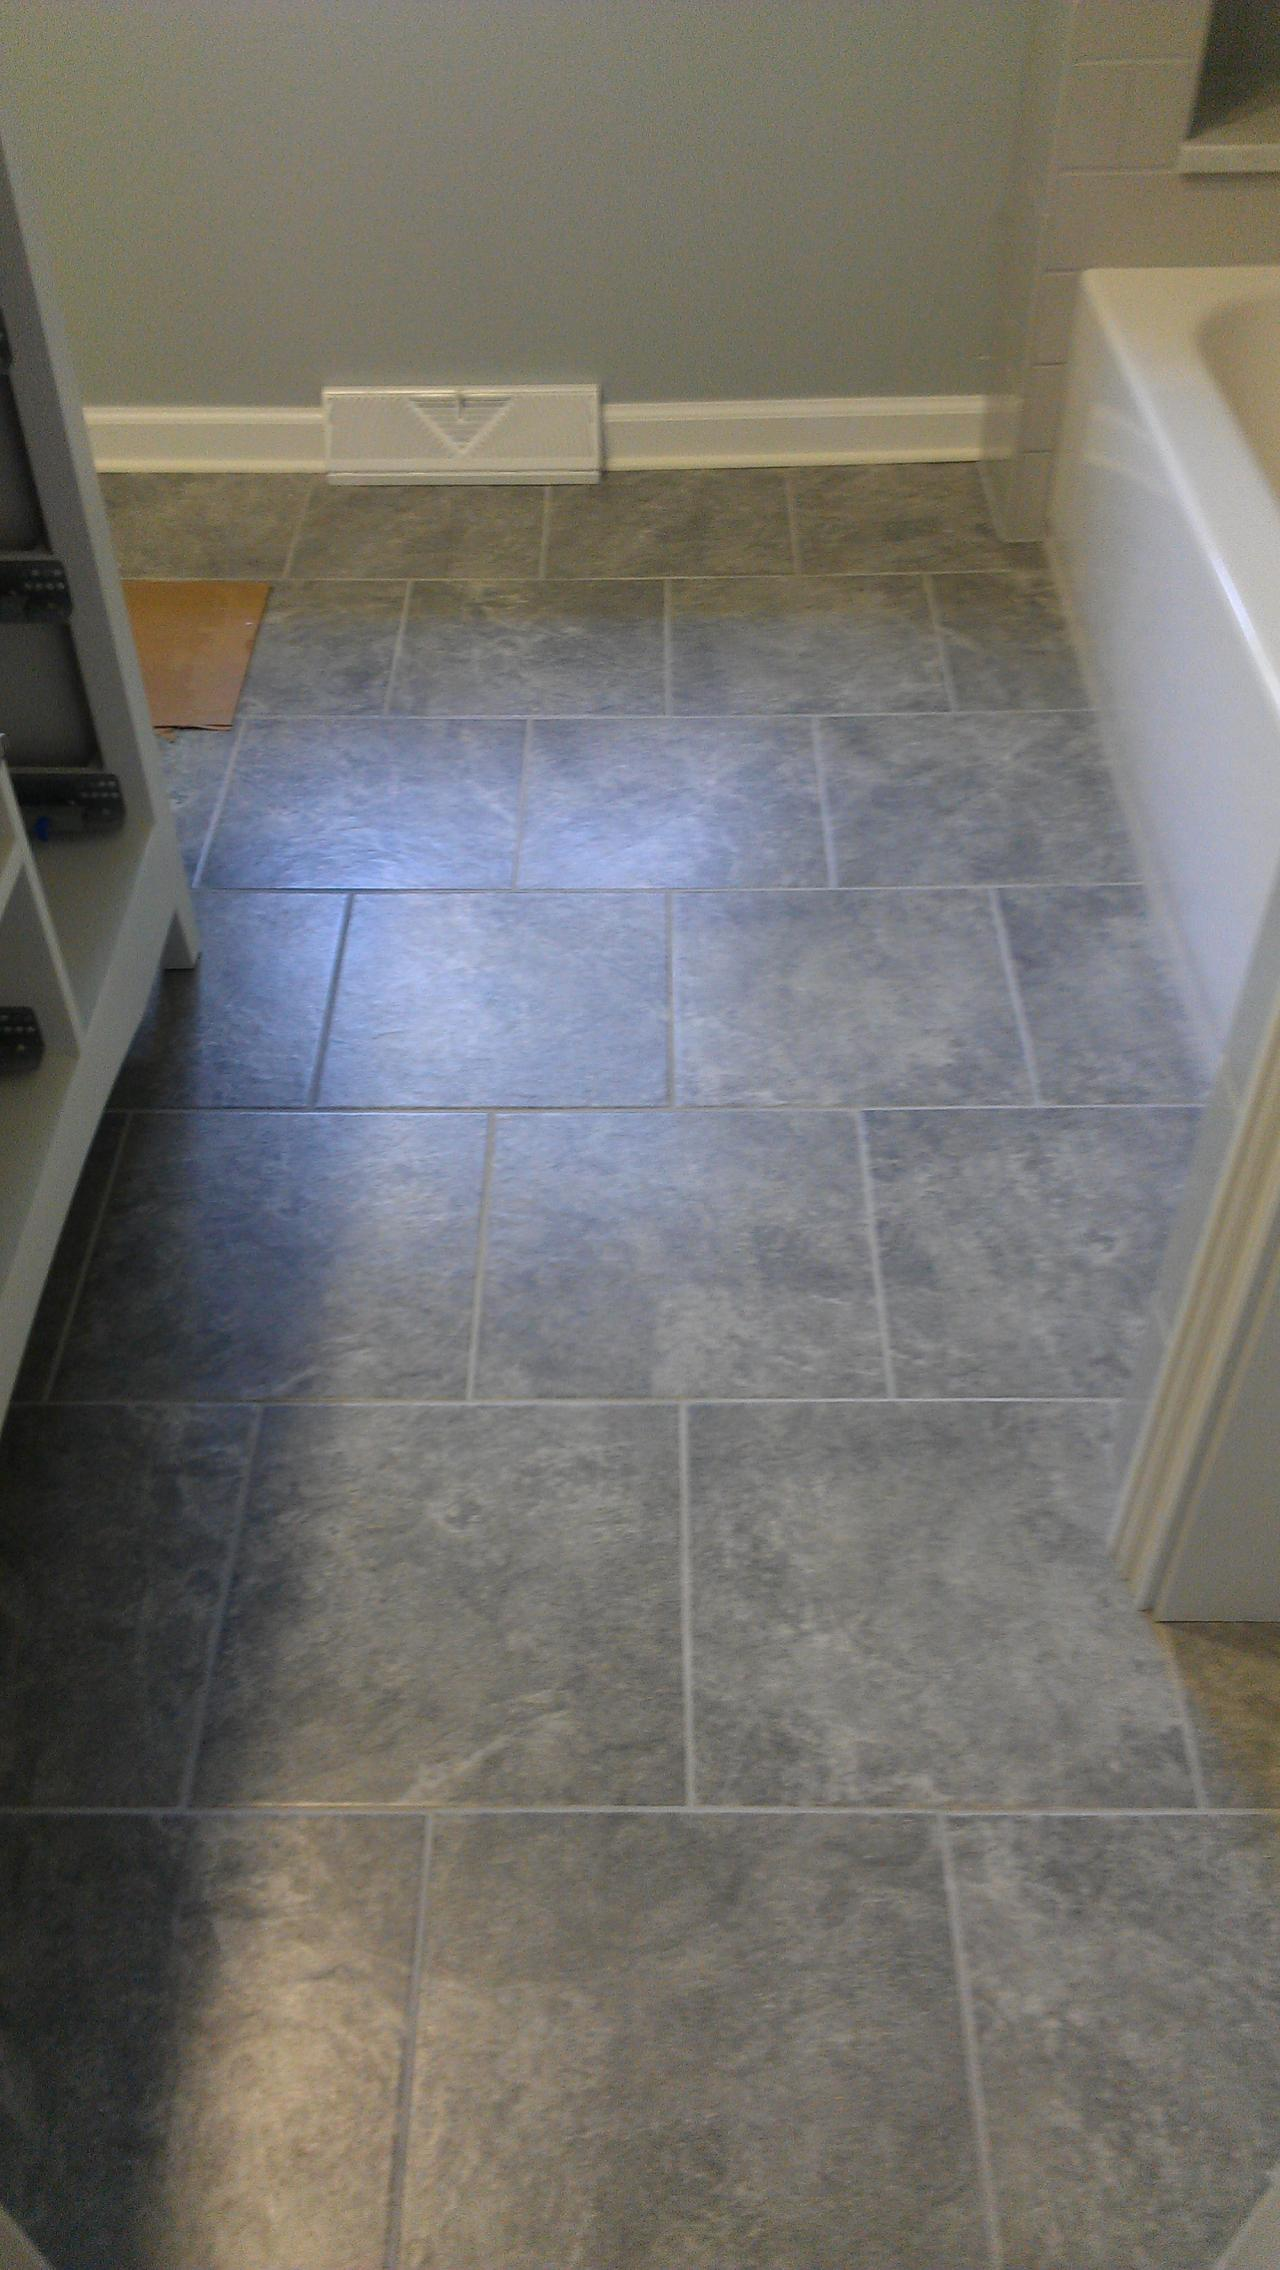 floor our and tile ceramic how bathrooms diy do i great painting painted detailing gray a bathroom simple it s post to floors